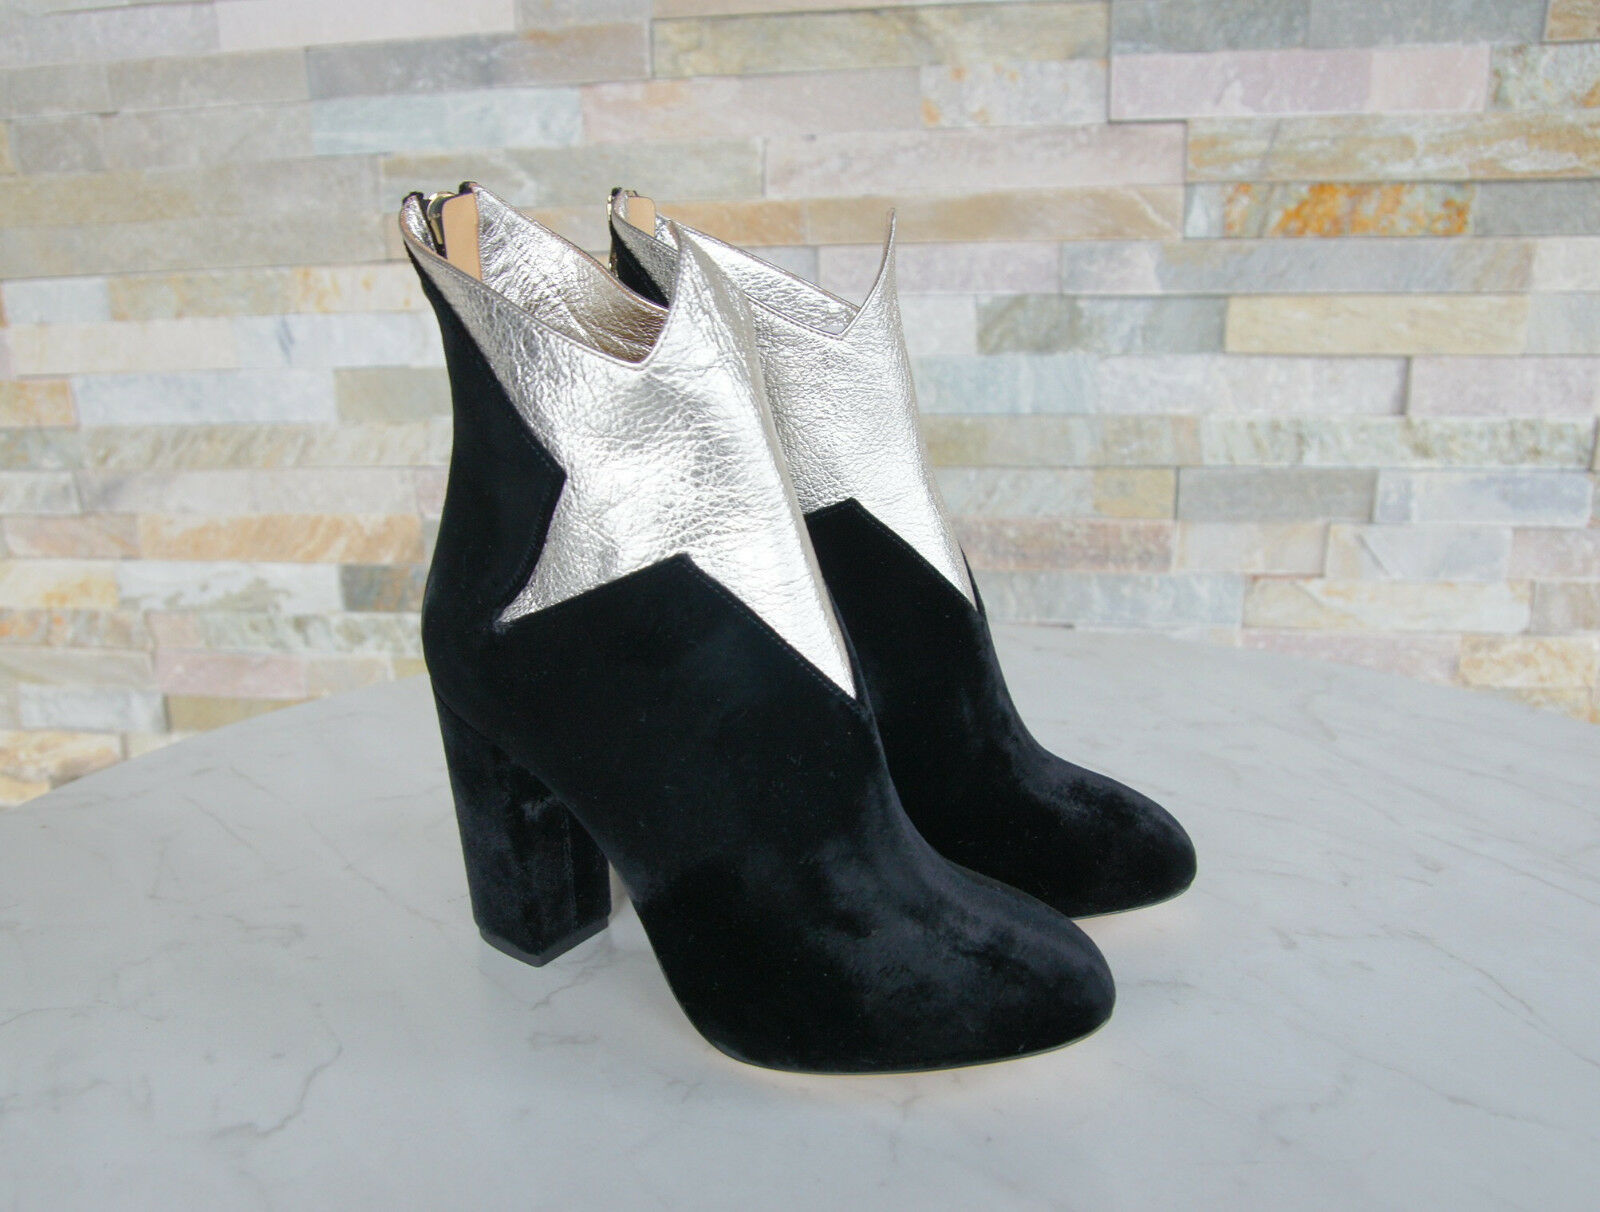 Luxury Charlotte Olympia 40 Ankle Boots Boots Boots Boots shoes Velvet New Previously c88bd5